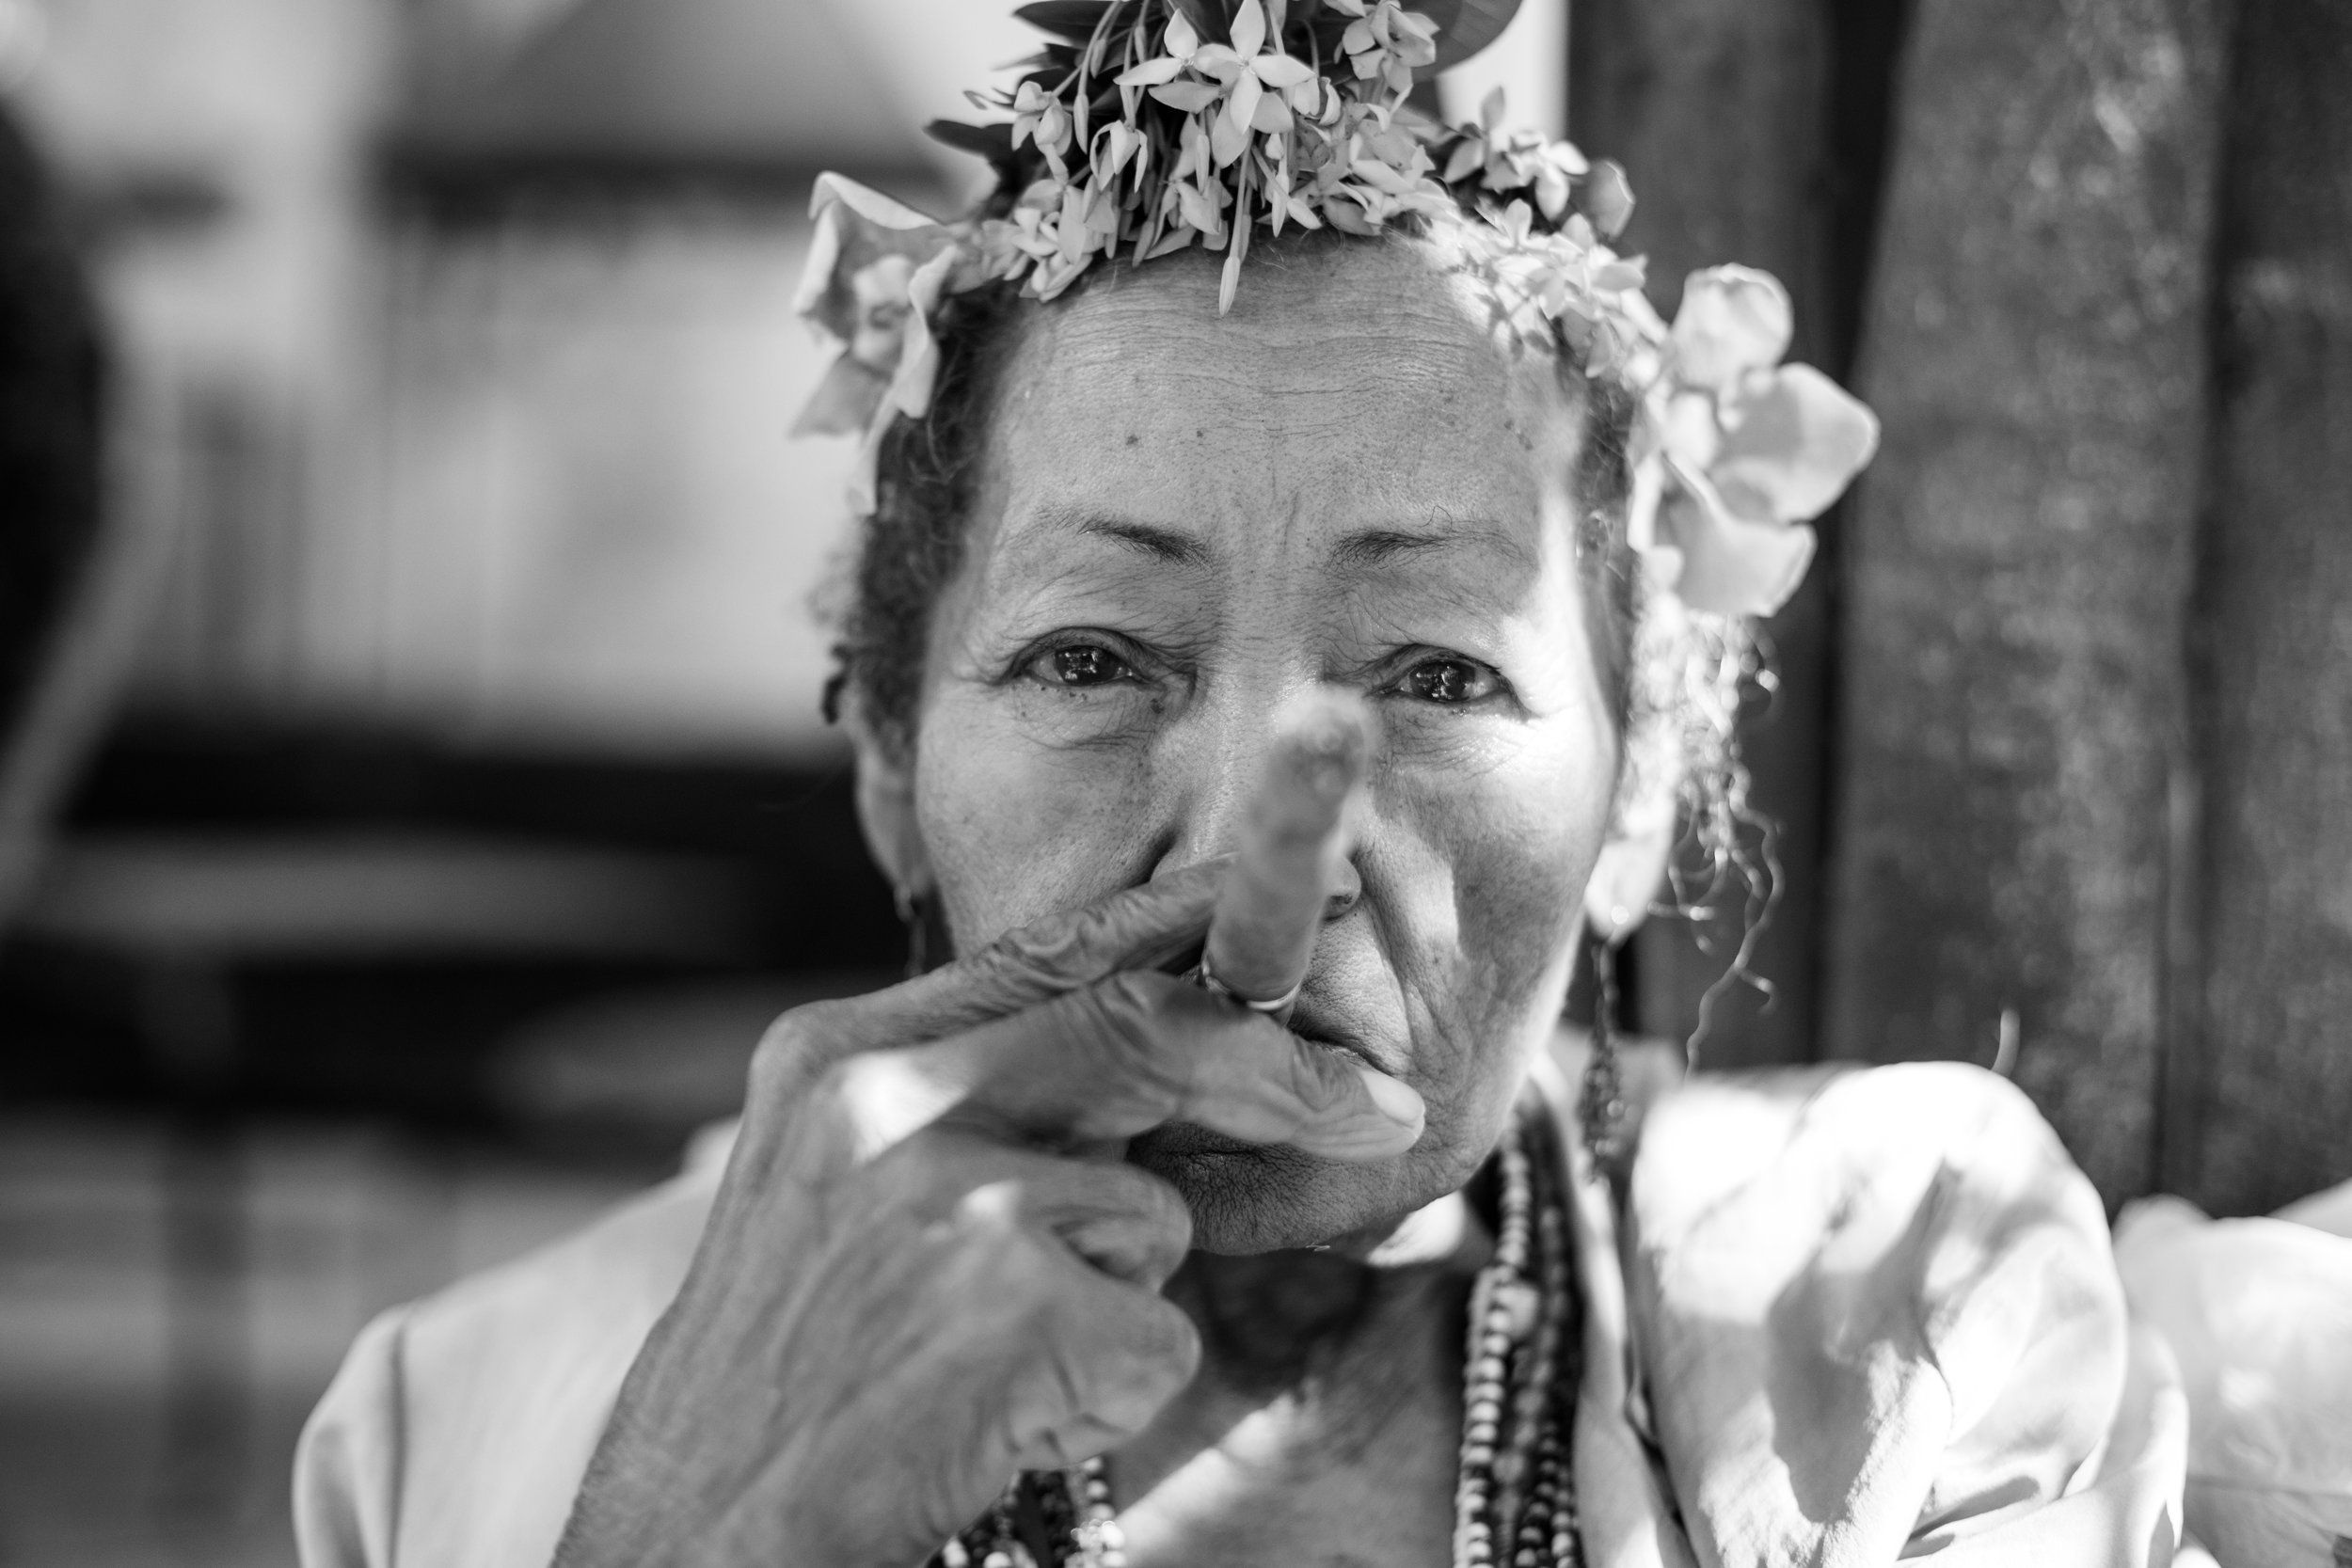 A black and white portrait of an elderly cuban lady with flowers in her hair and a large cuban cigar.